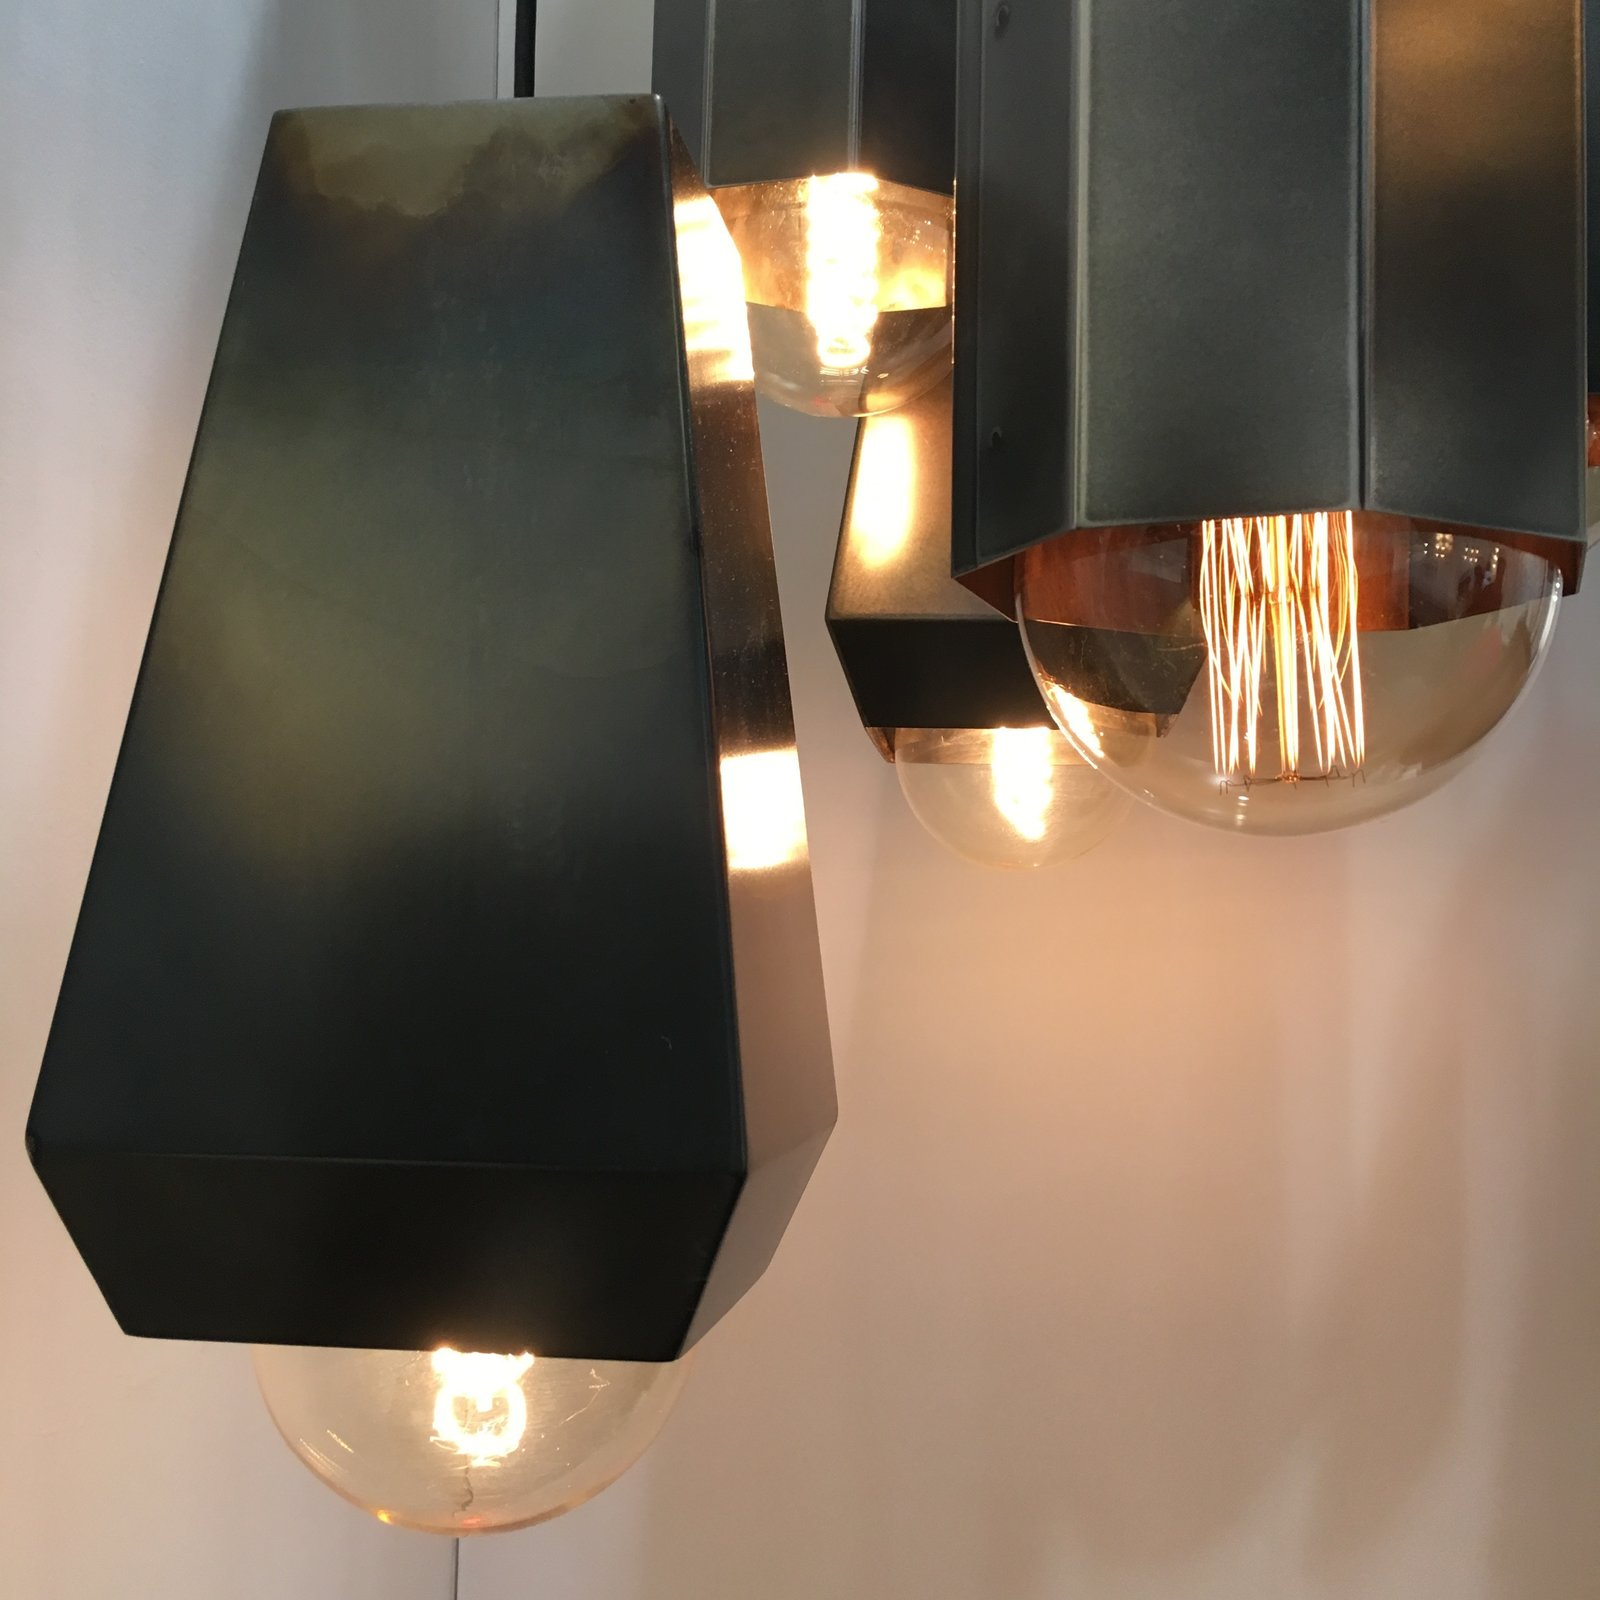 The Hex Light, constructed of steel, is stained and buffed by hand by John Beck Steel.